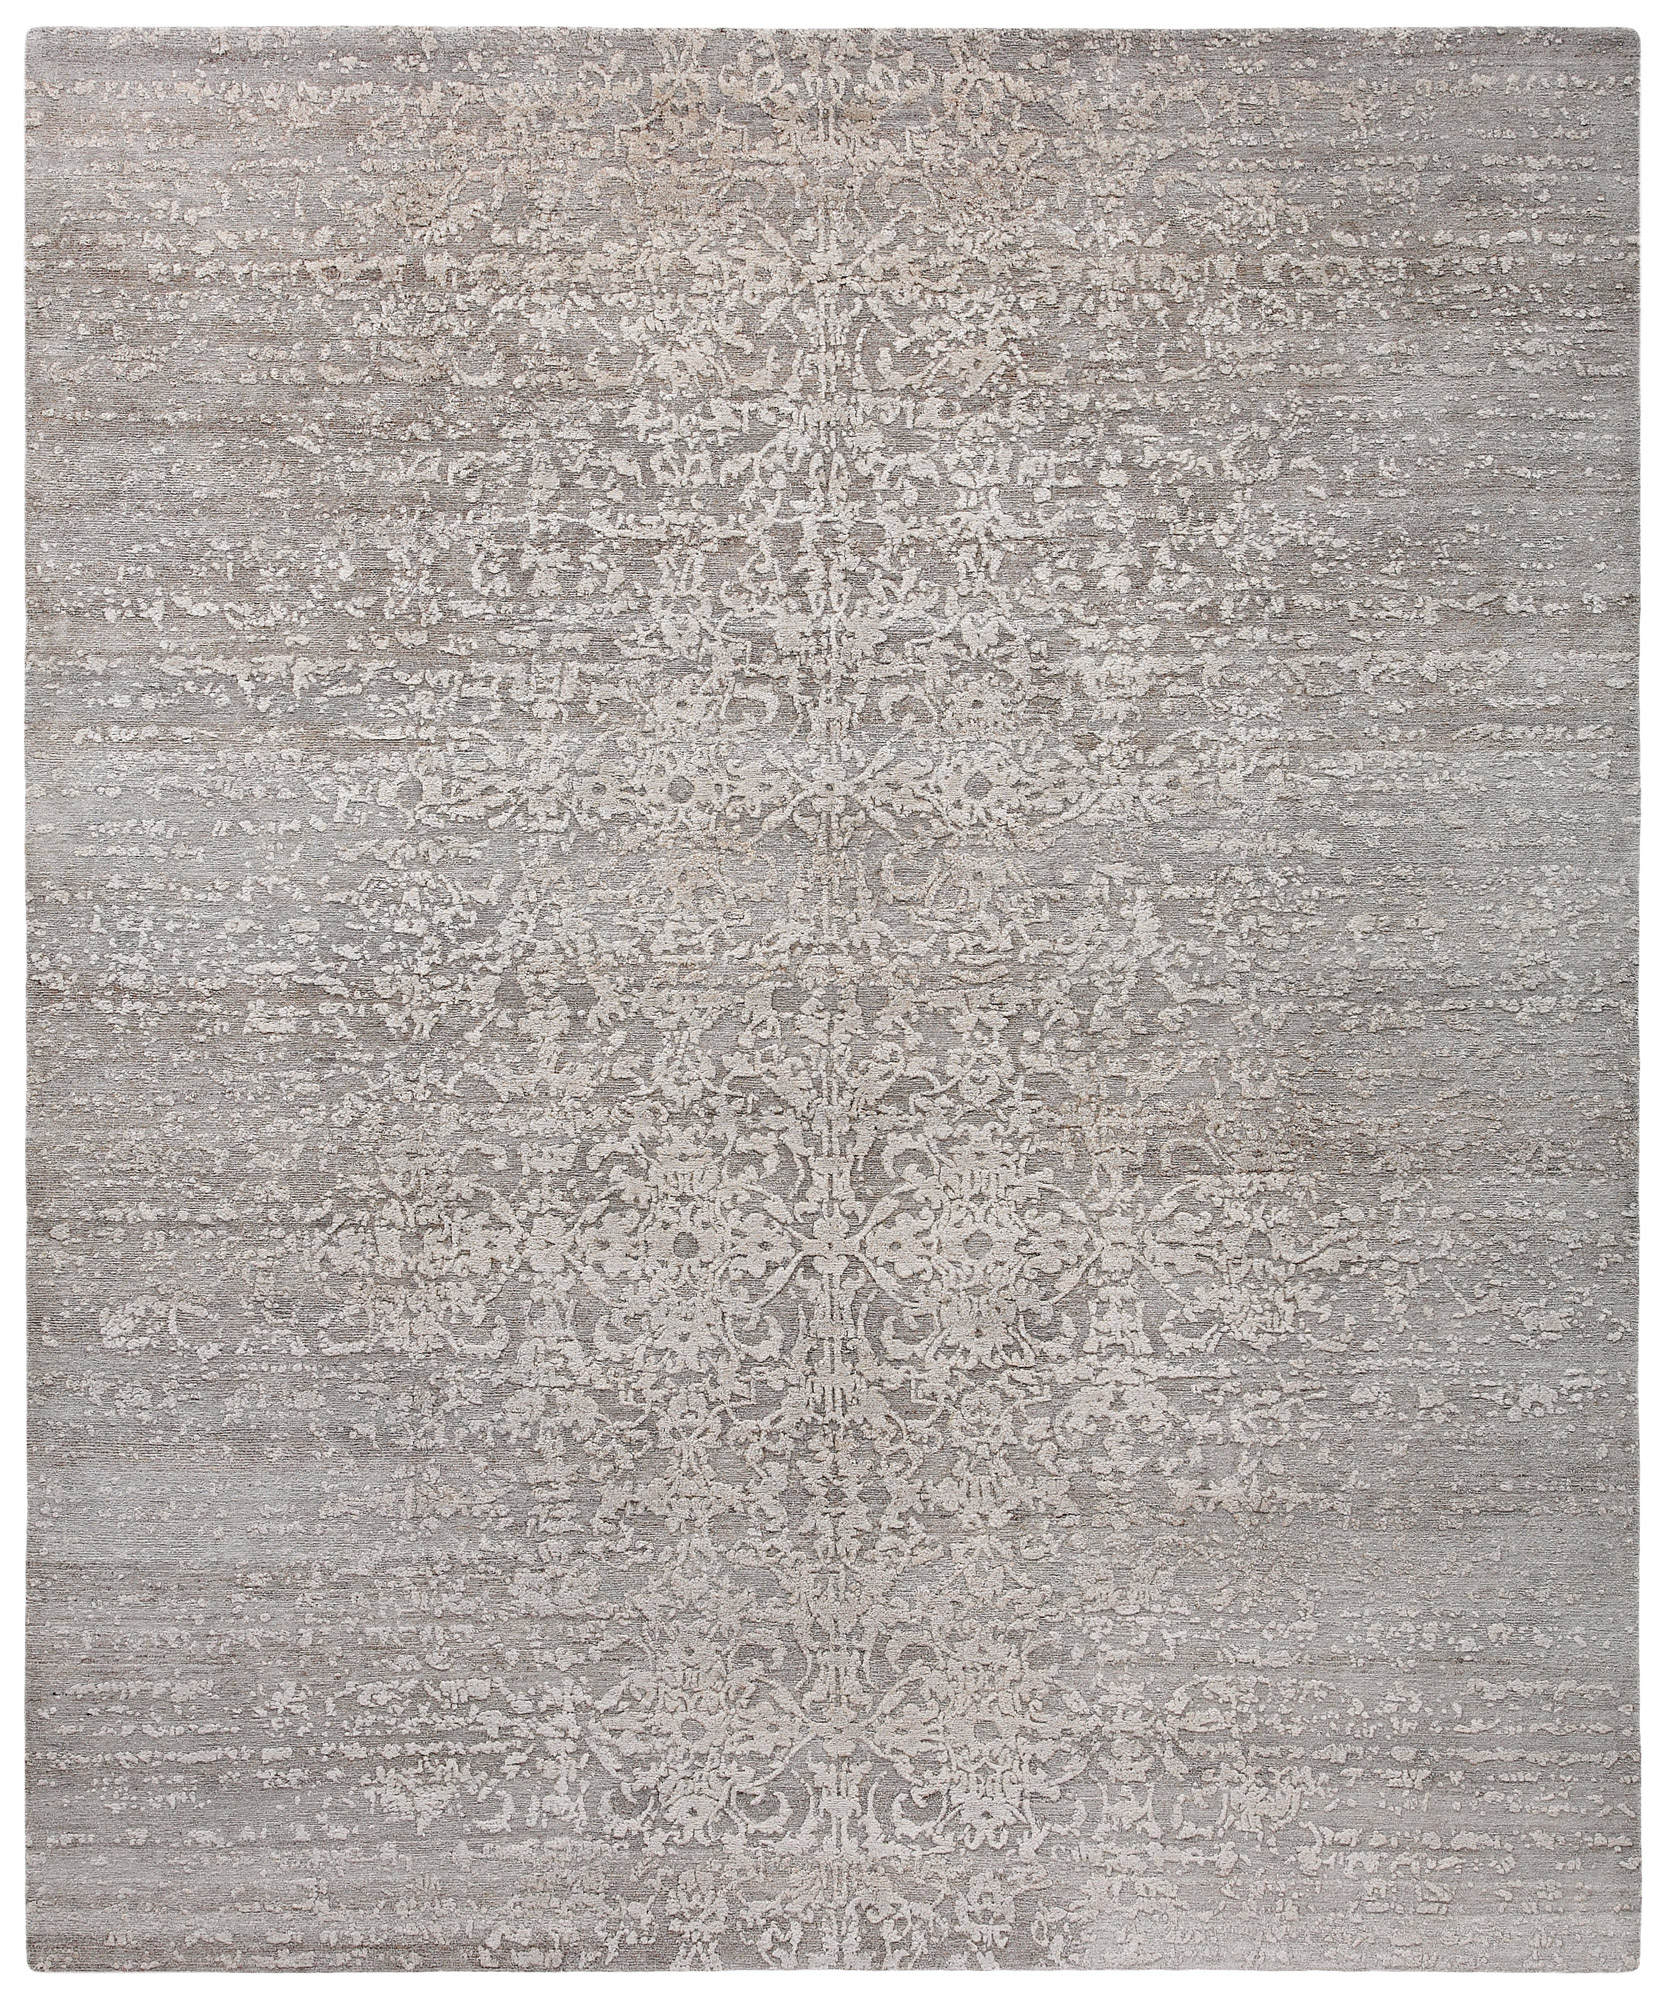 fugitive beauty and magical intrigue of jan kath contemporary rug art cover magazine carpets. Black Bedroom Furniture Sets. Home Design Ideas